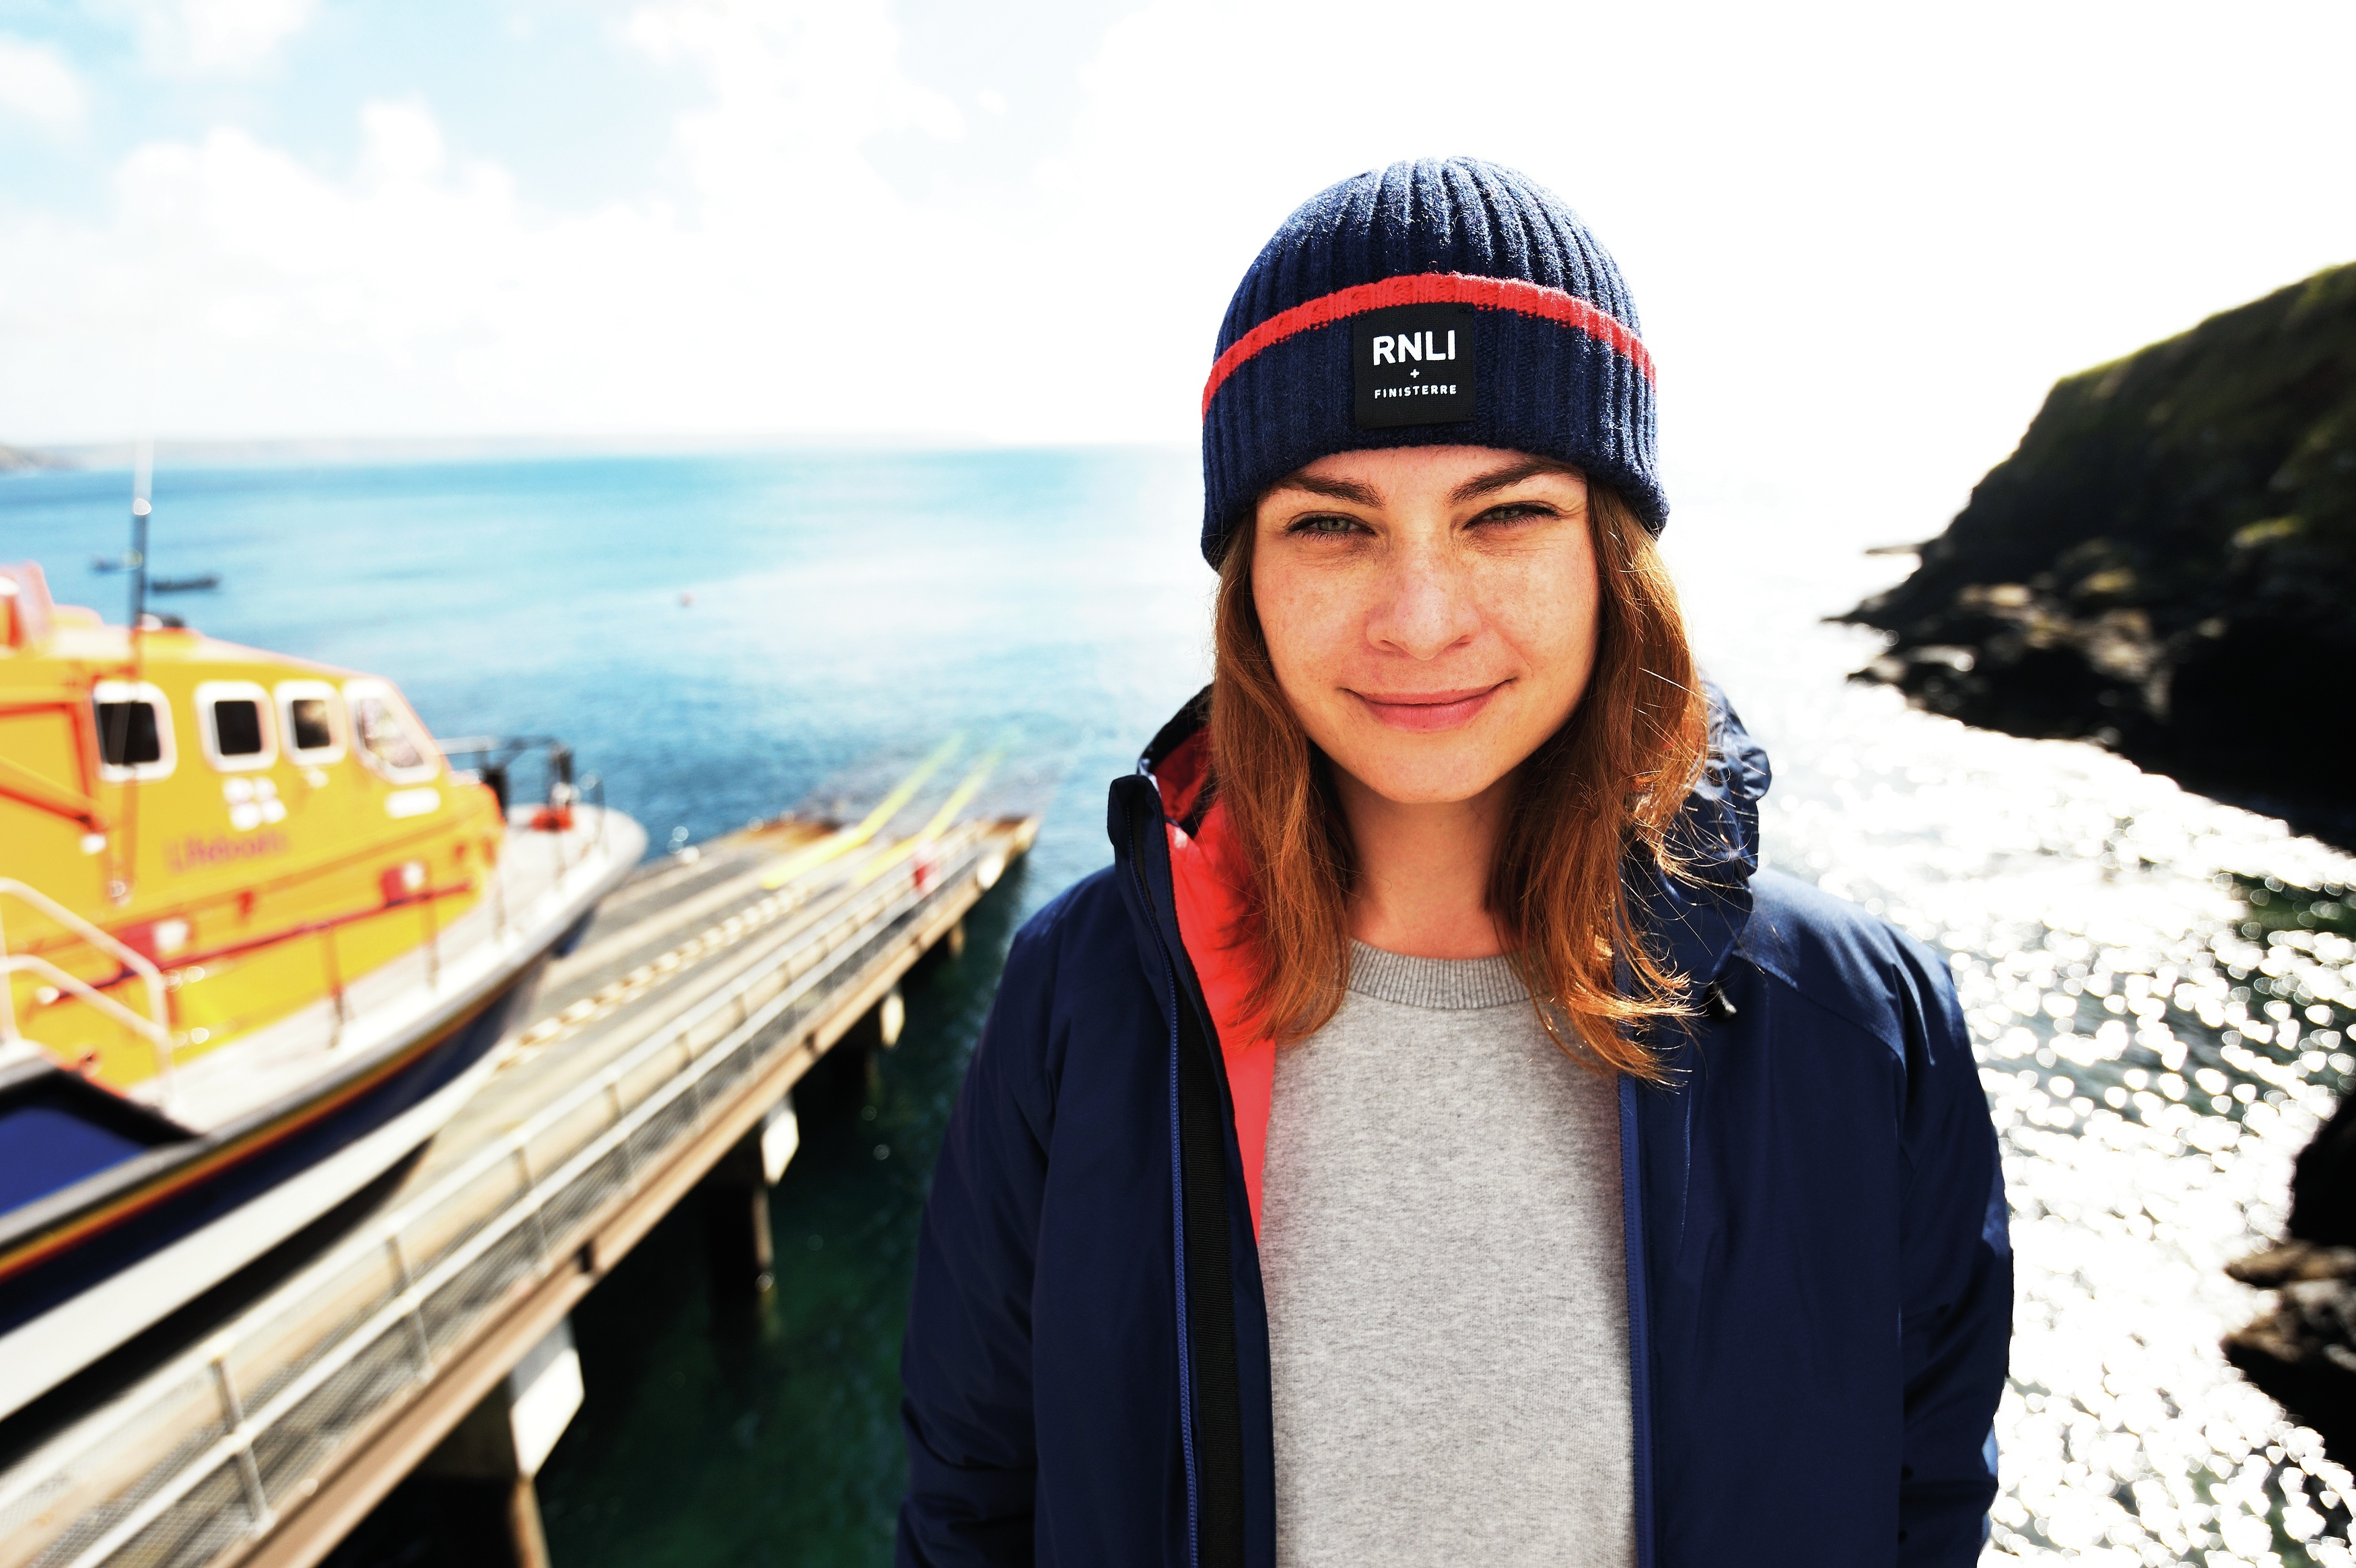 RNLI and Finisterre collaborate on a line of clothing